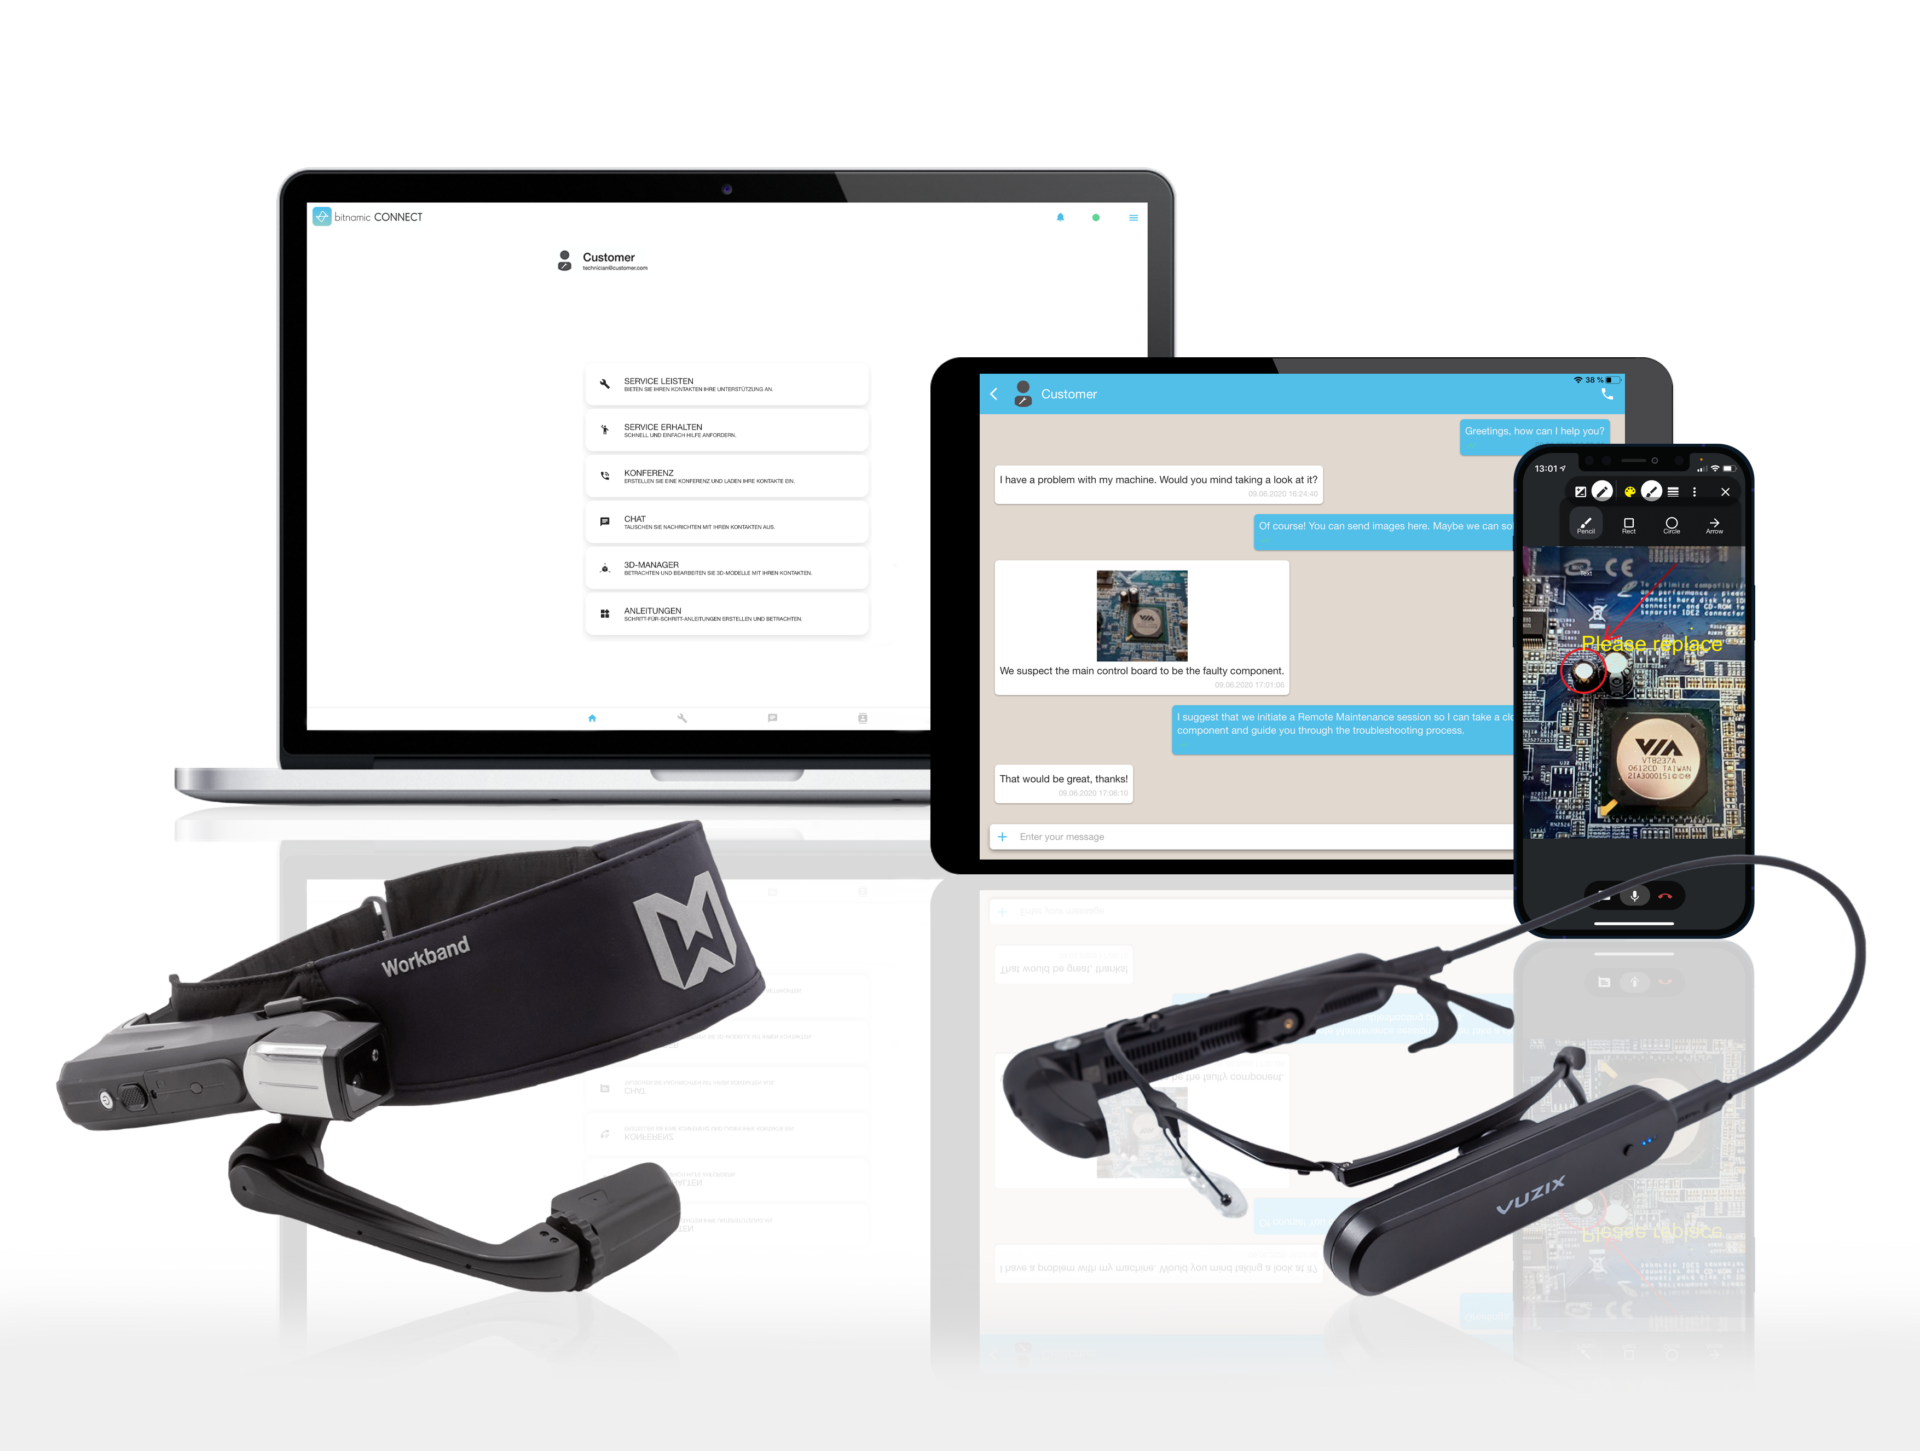 bitnamic CONNECT Augmented Reality in der Industrie